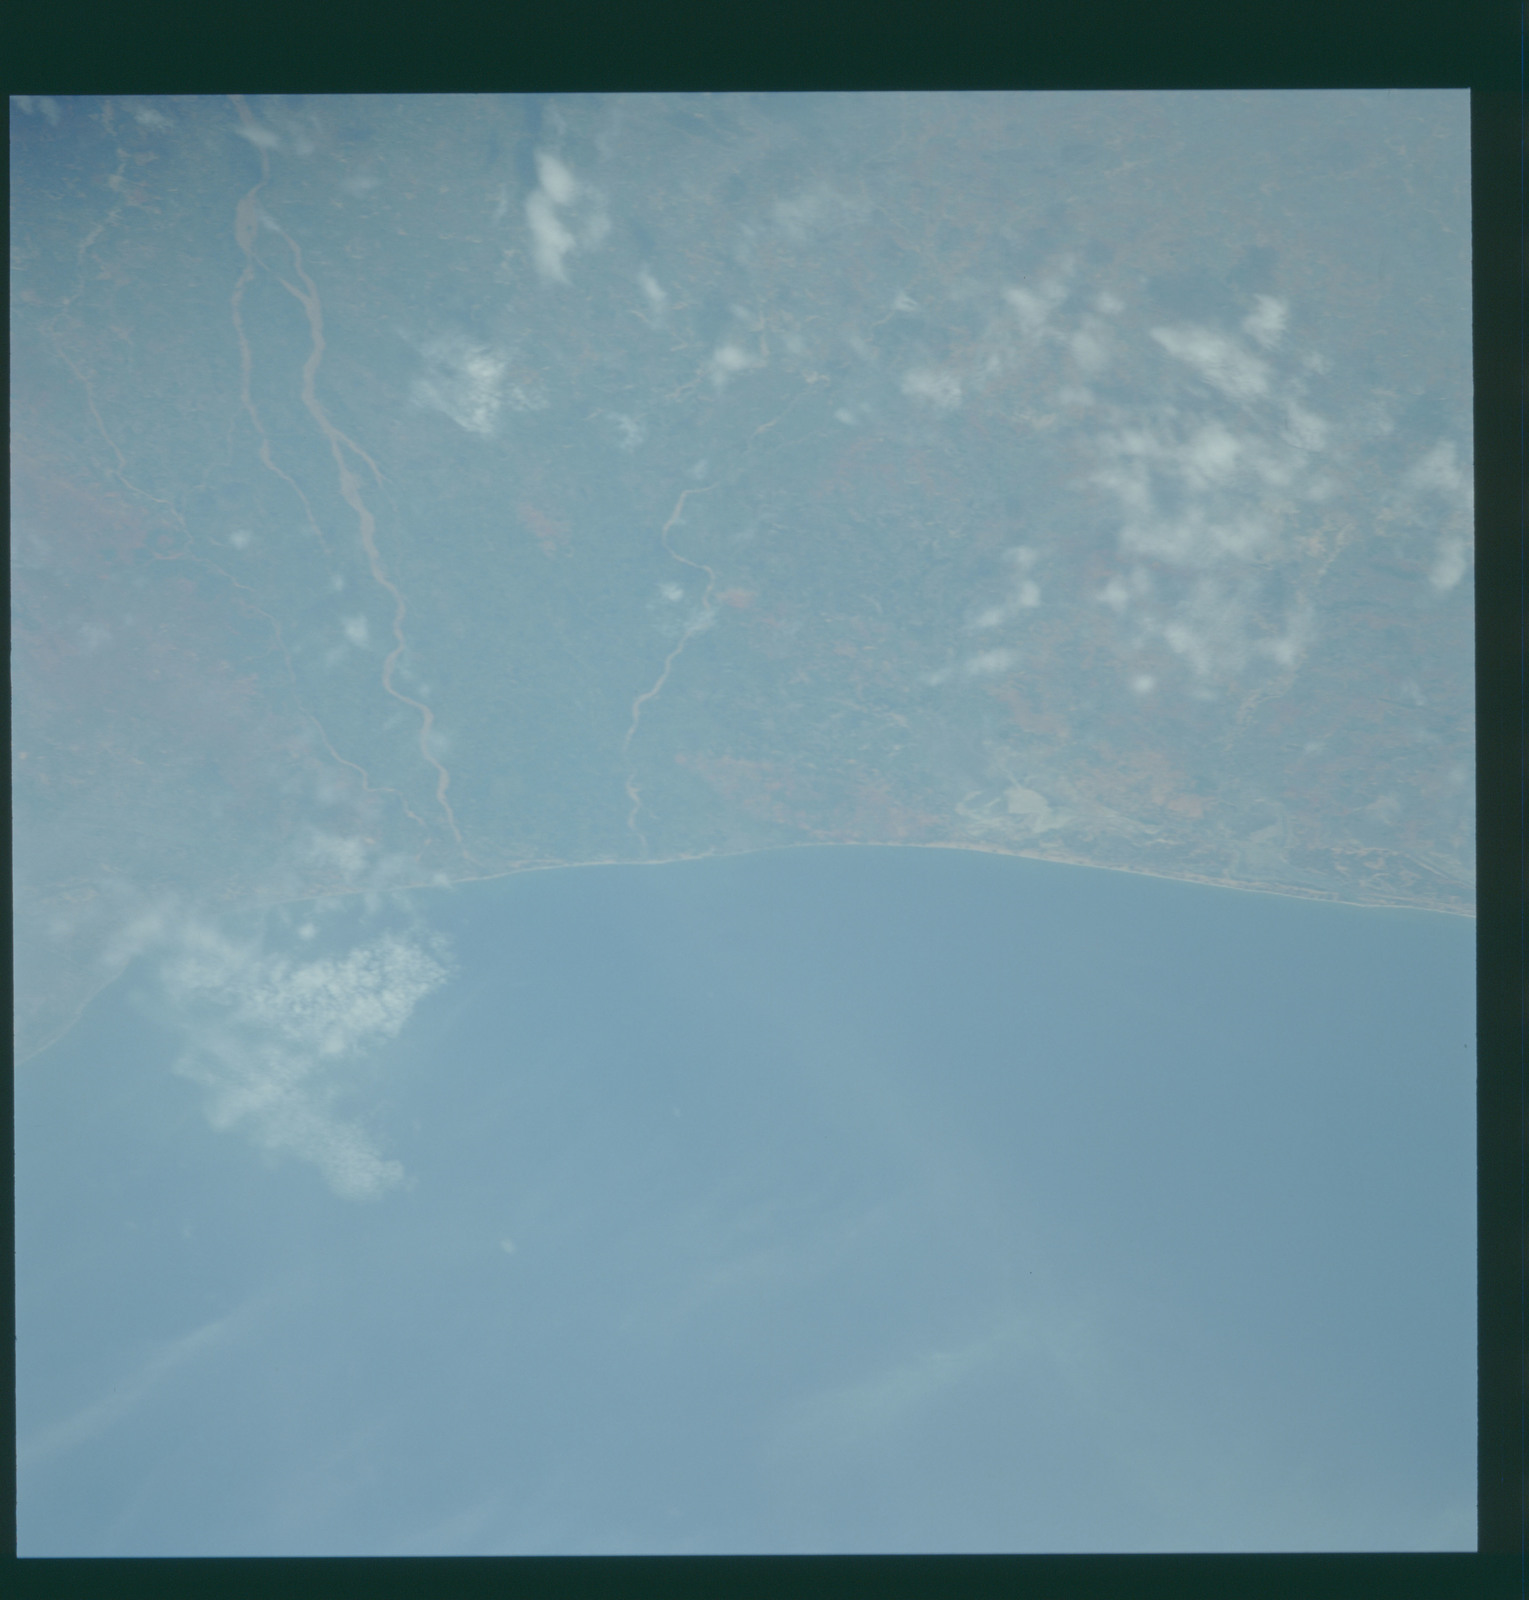 S43-607-020 - STS-043 - STS-43 earth observations